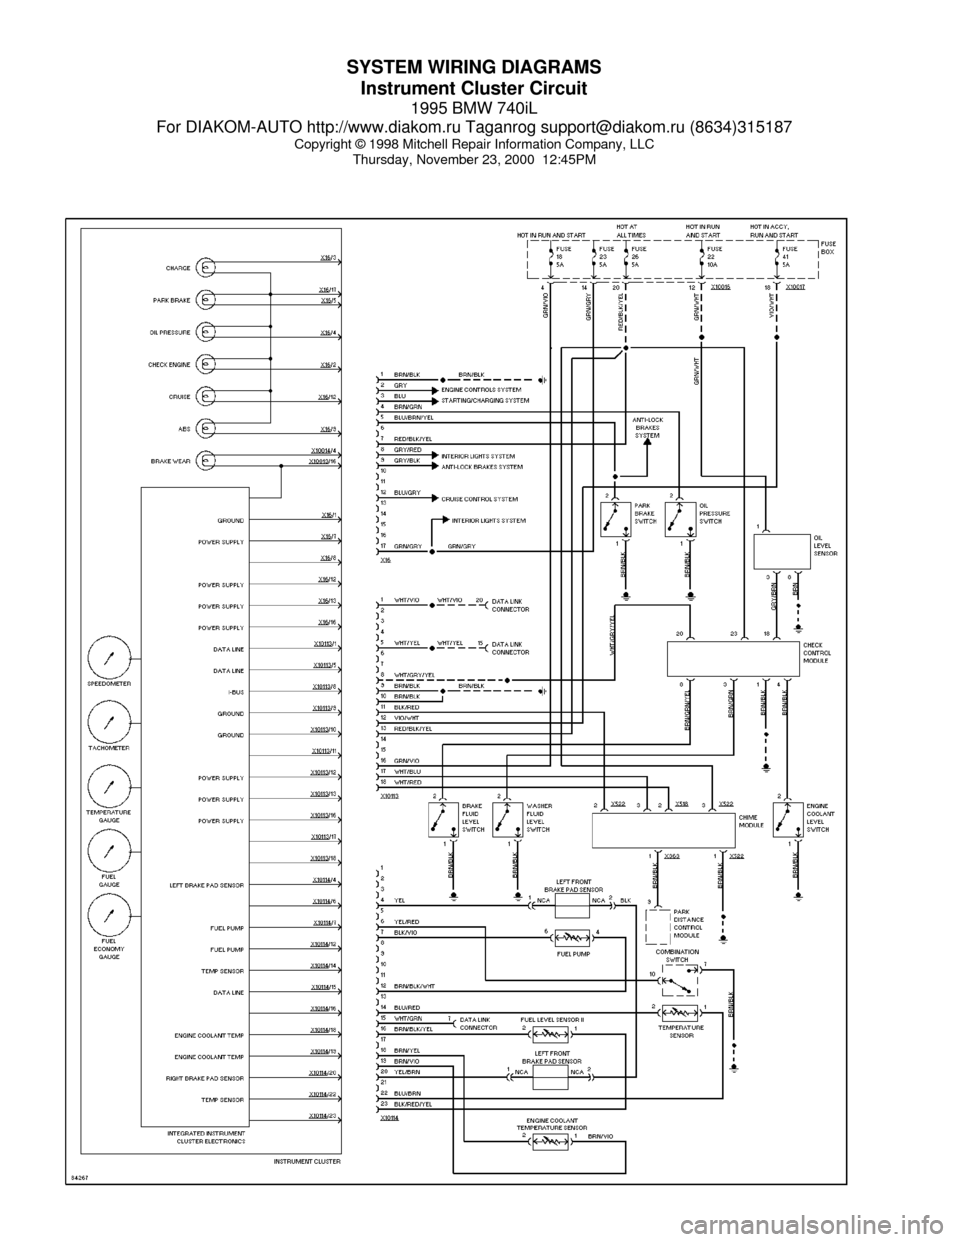 bmw k75 motorcycle wiring diagram